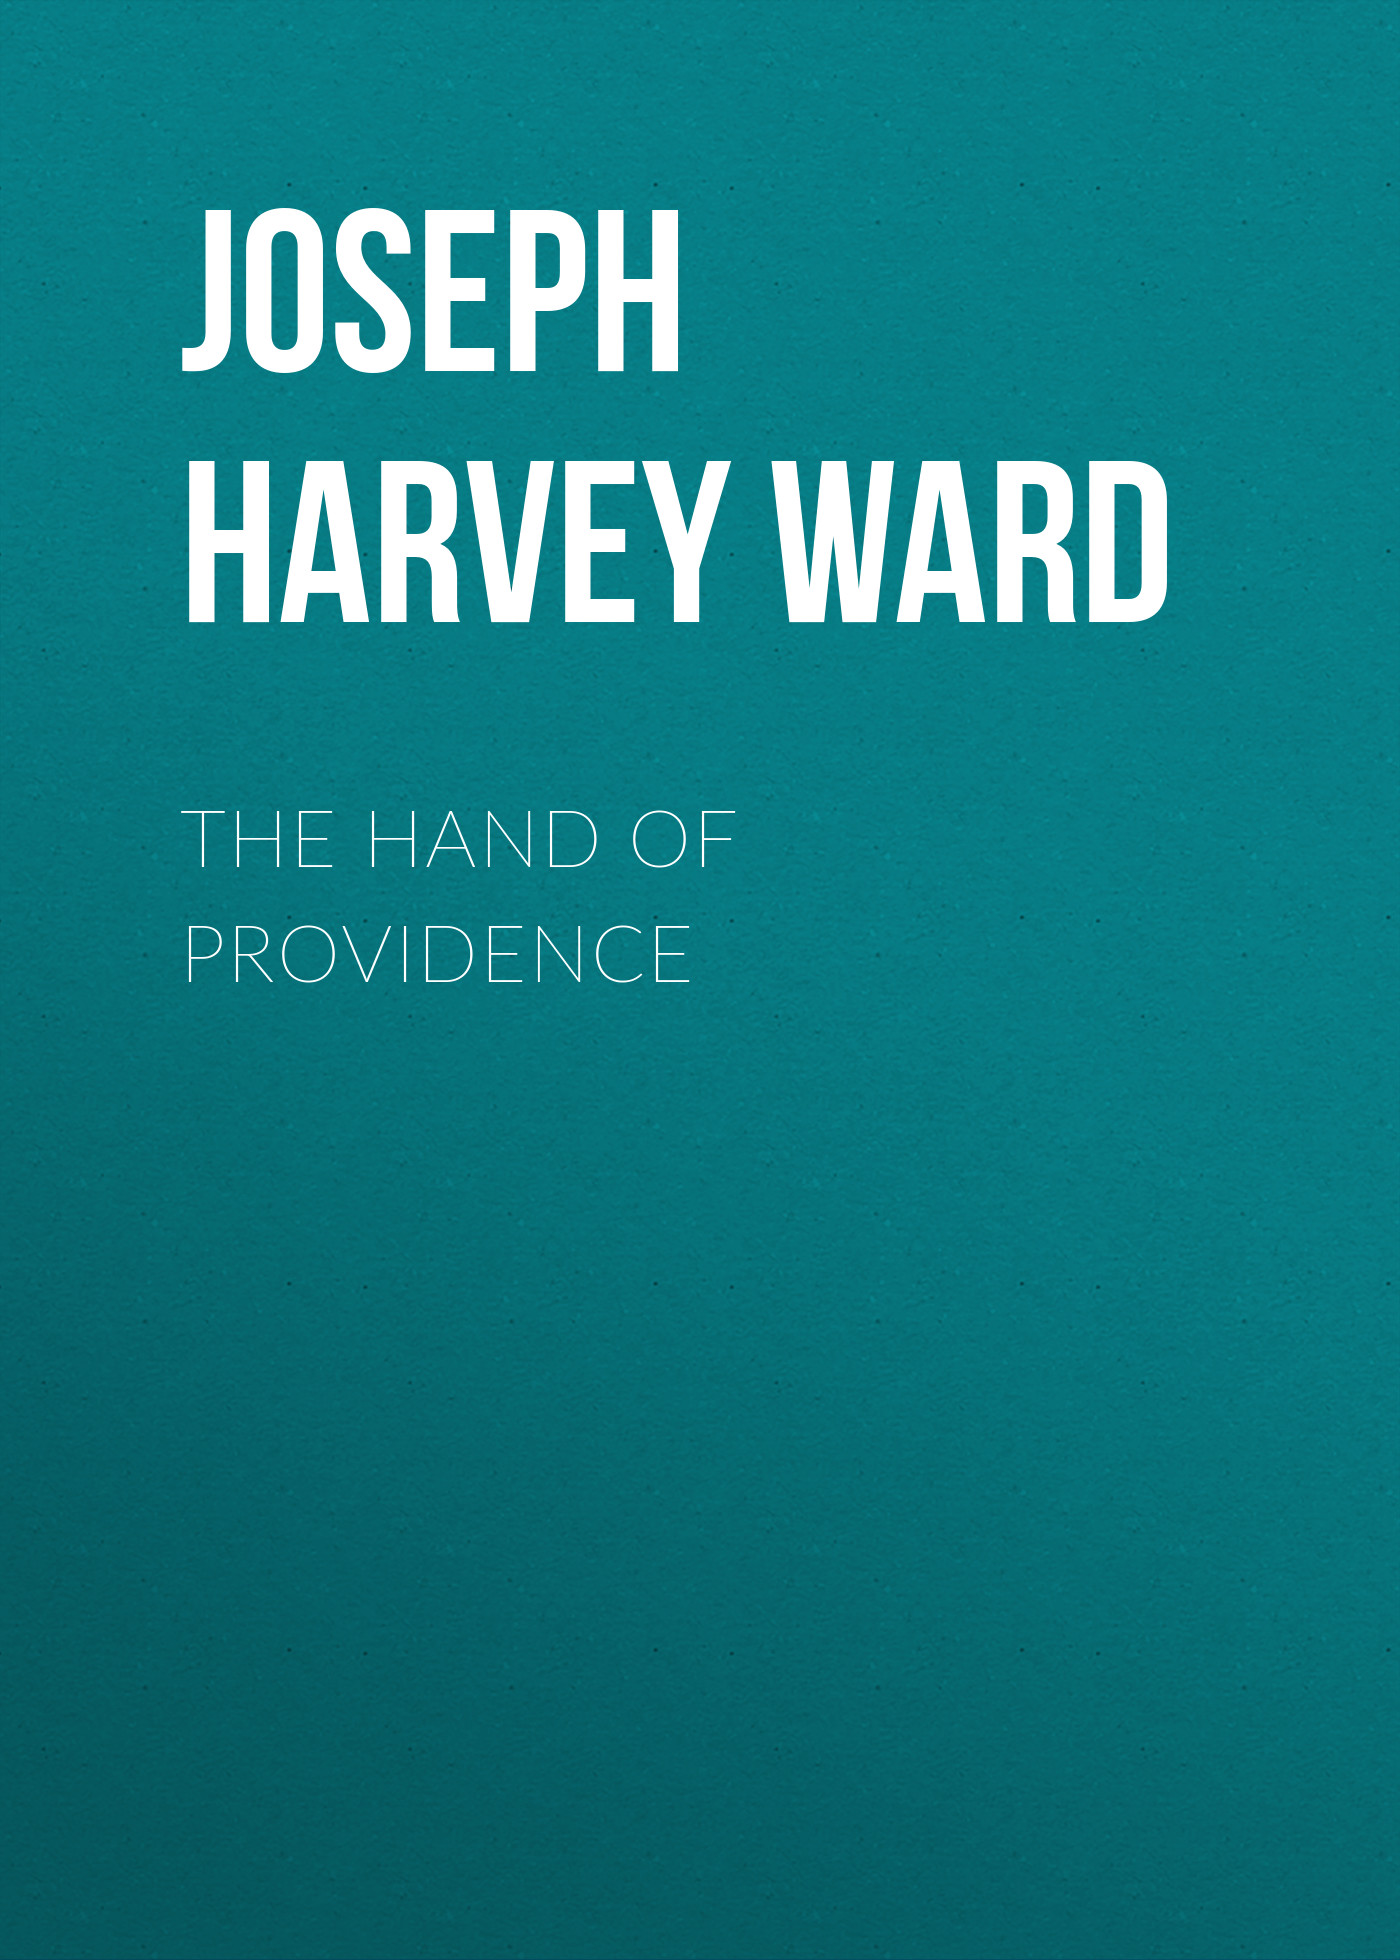 Joseph Harvey Ward The Hand of Providence kristy woodson harvey slightly south of simple